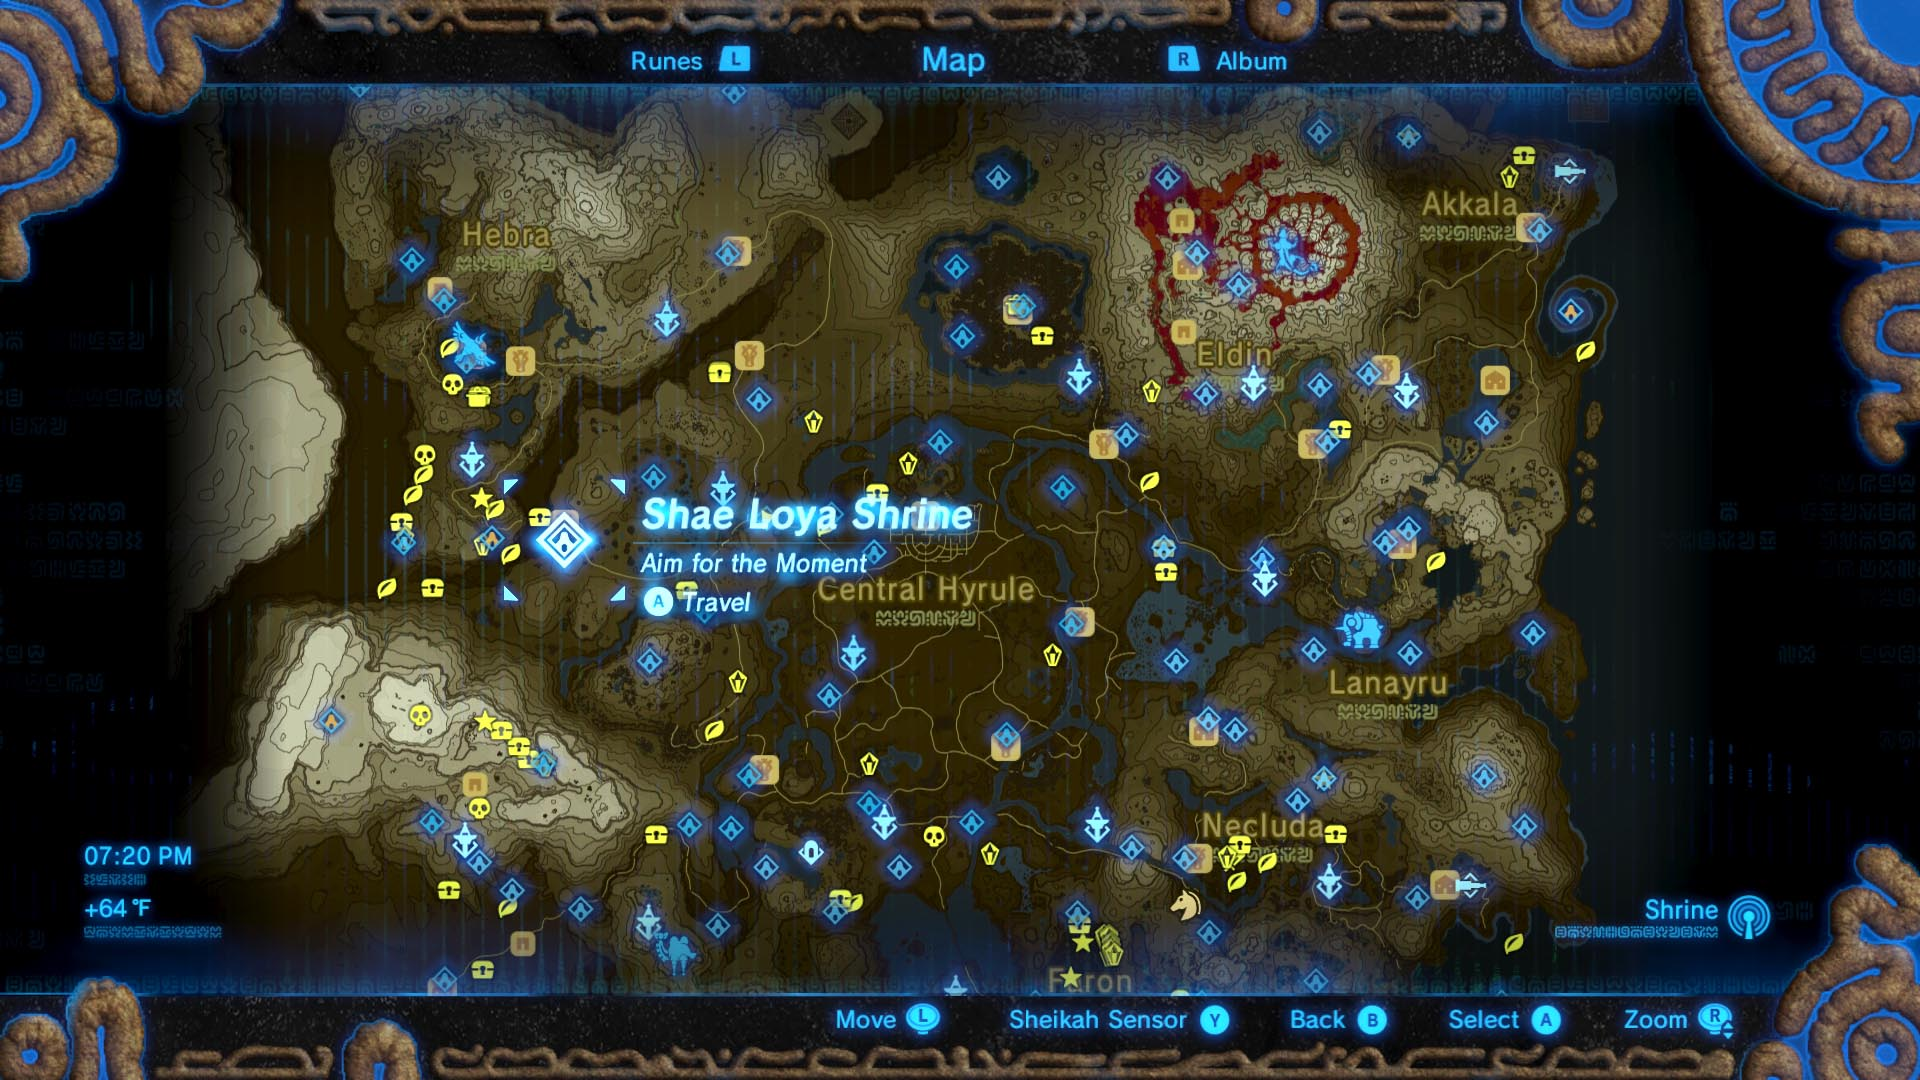 Zelda: Breath of the Wild guide: Shae Loya shrine location